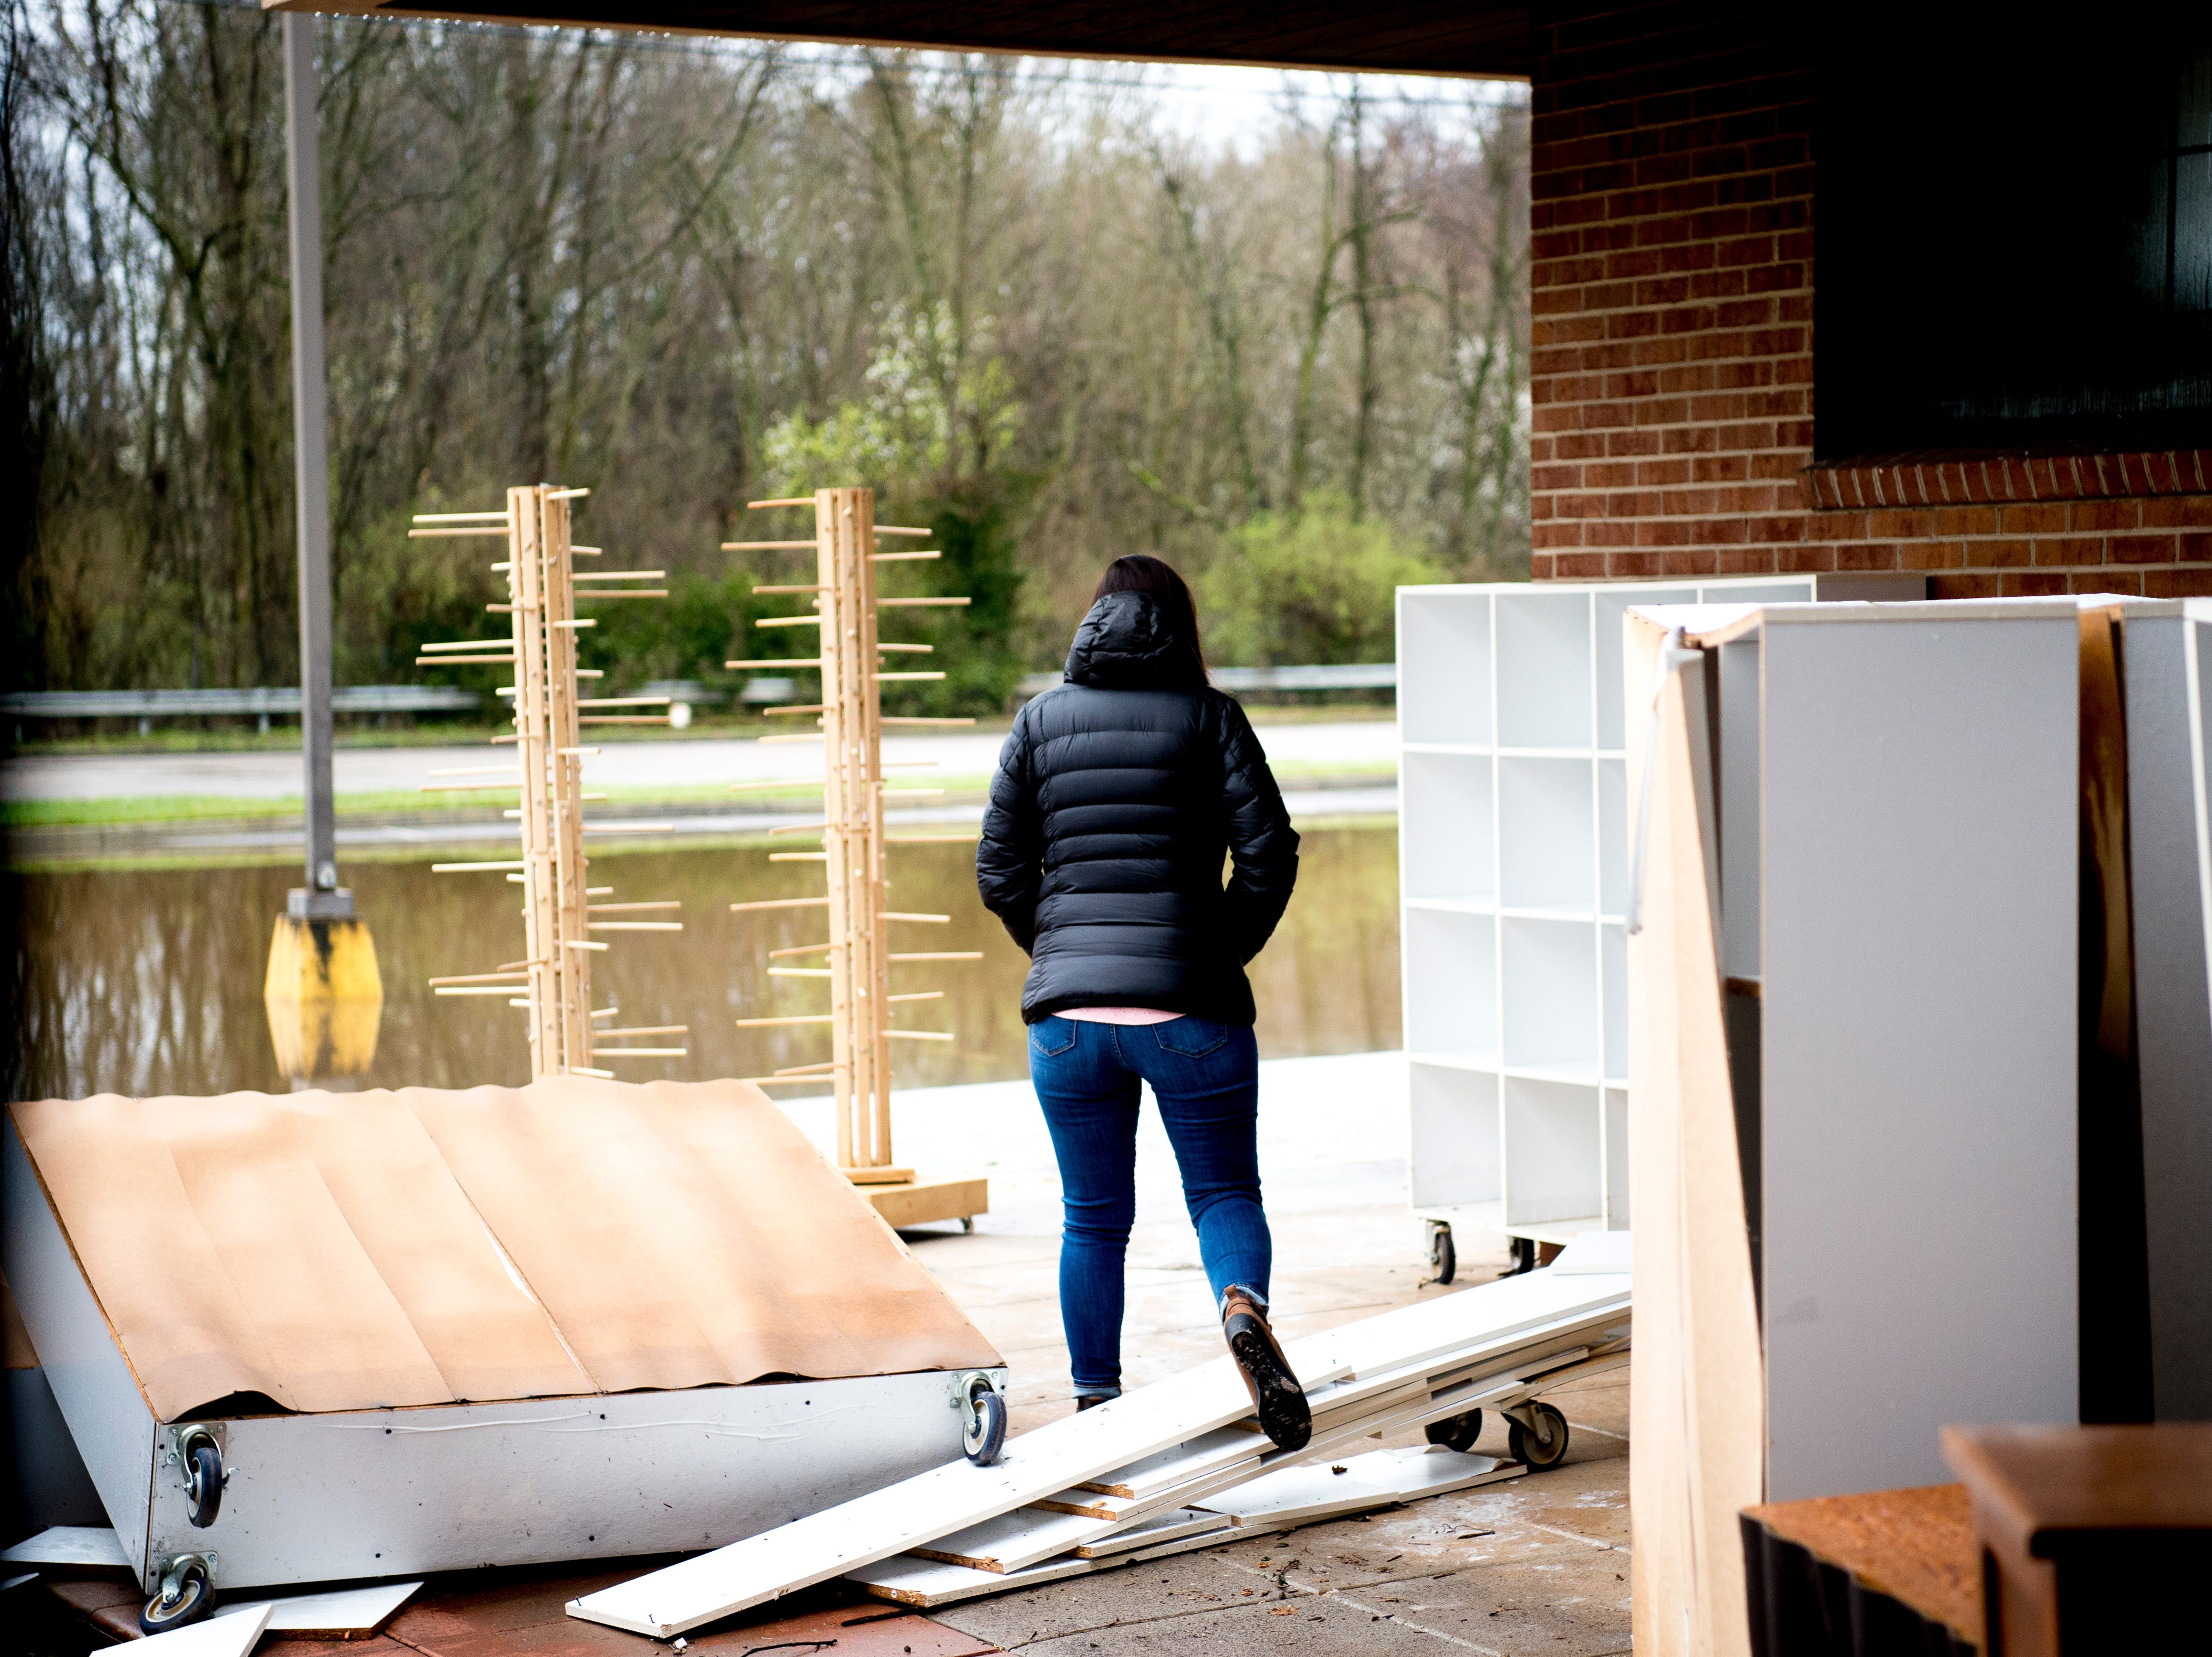 A woman steps over debris outside of The Yarn Haven at 464 Cedar Bluff Road in Knoxville, Tennessee on Friday, March 1, 2019. Nearly a quarter of the stores inventory including furniture and paperwork was lost in the floodwaters, which reached over a foot in depth. The owners estimate it will take them a minimum of two months until they can open up shop again.